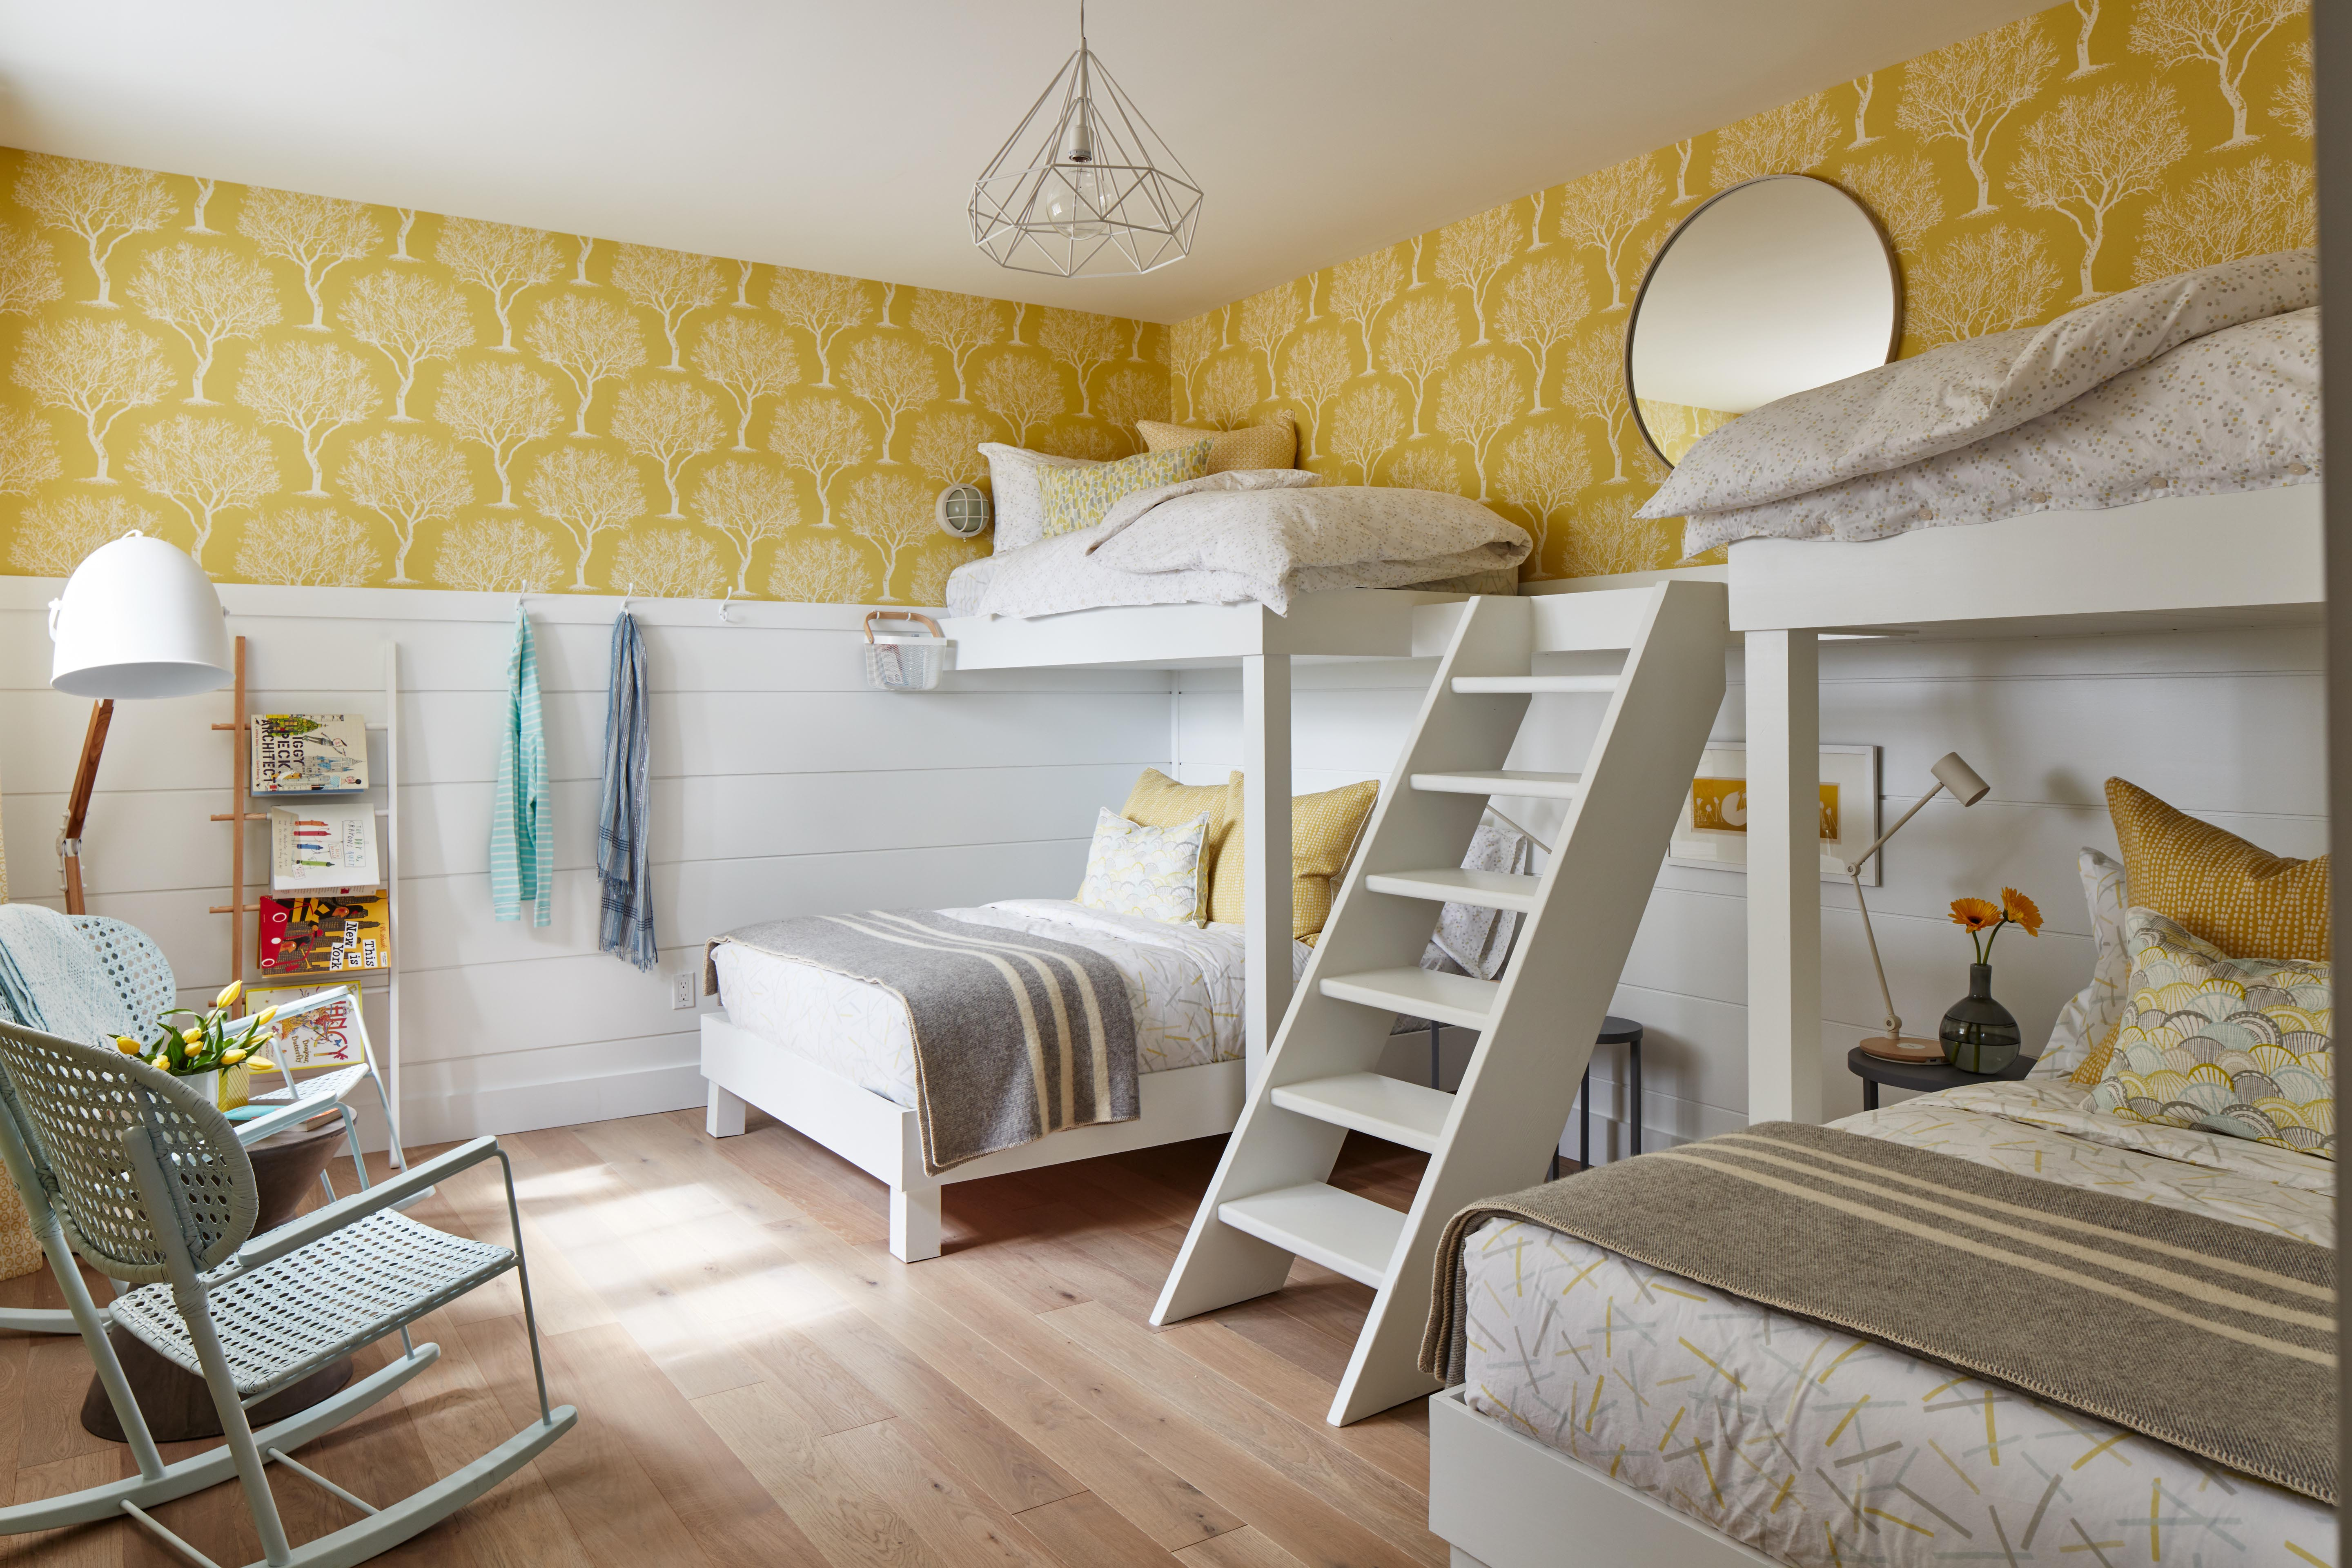 Cottage style in a modern farmhouse bunkroom by #SarahRichardson #shiplap #yellowwallpaper #bunkroom